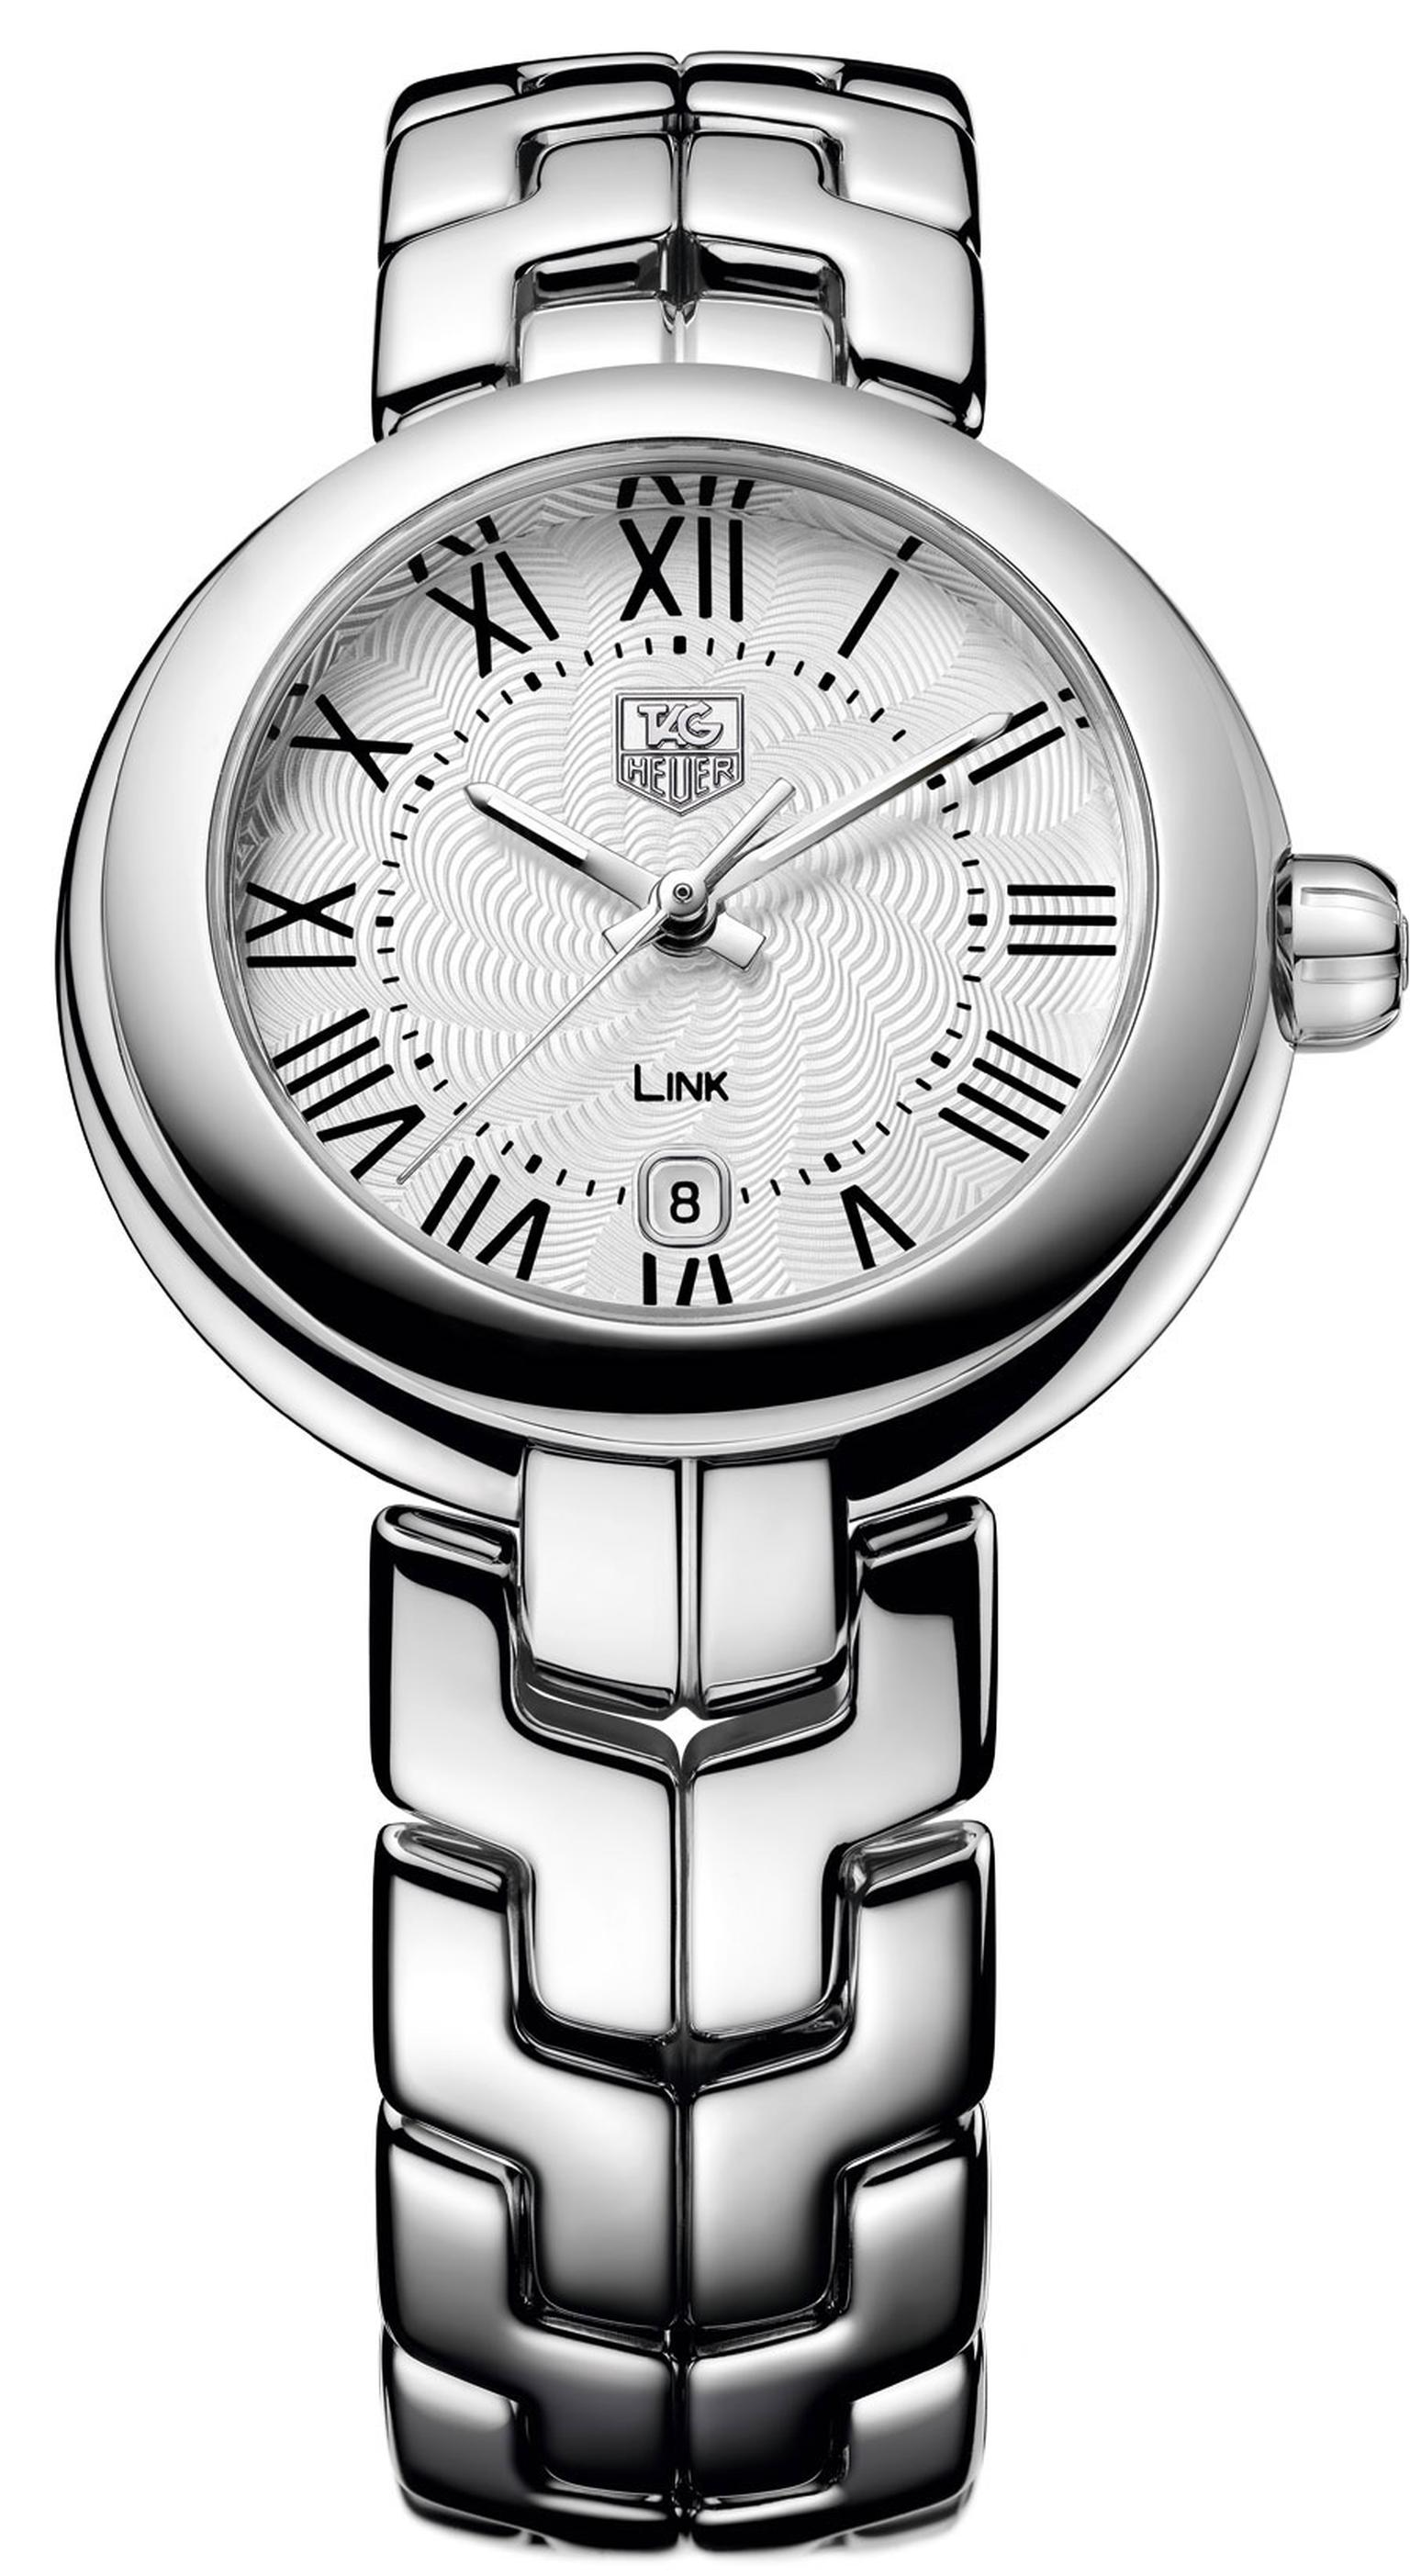 Tag-Heuer-Link-Lady-Roman-Numerals_Dial